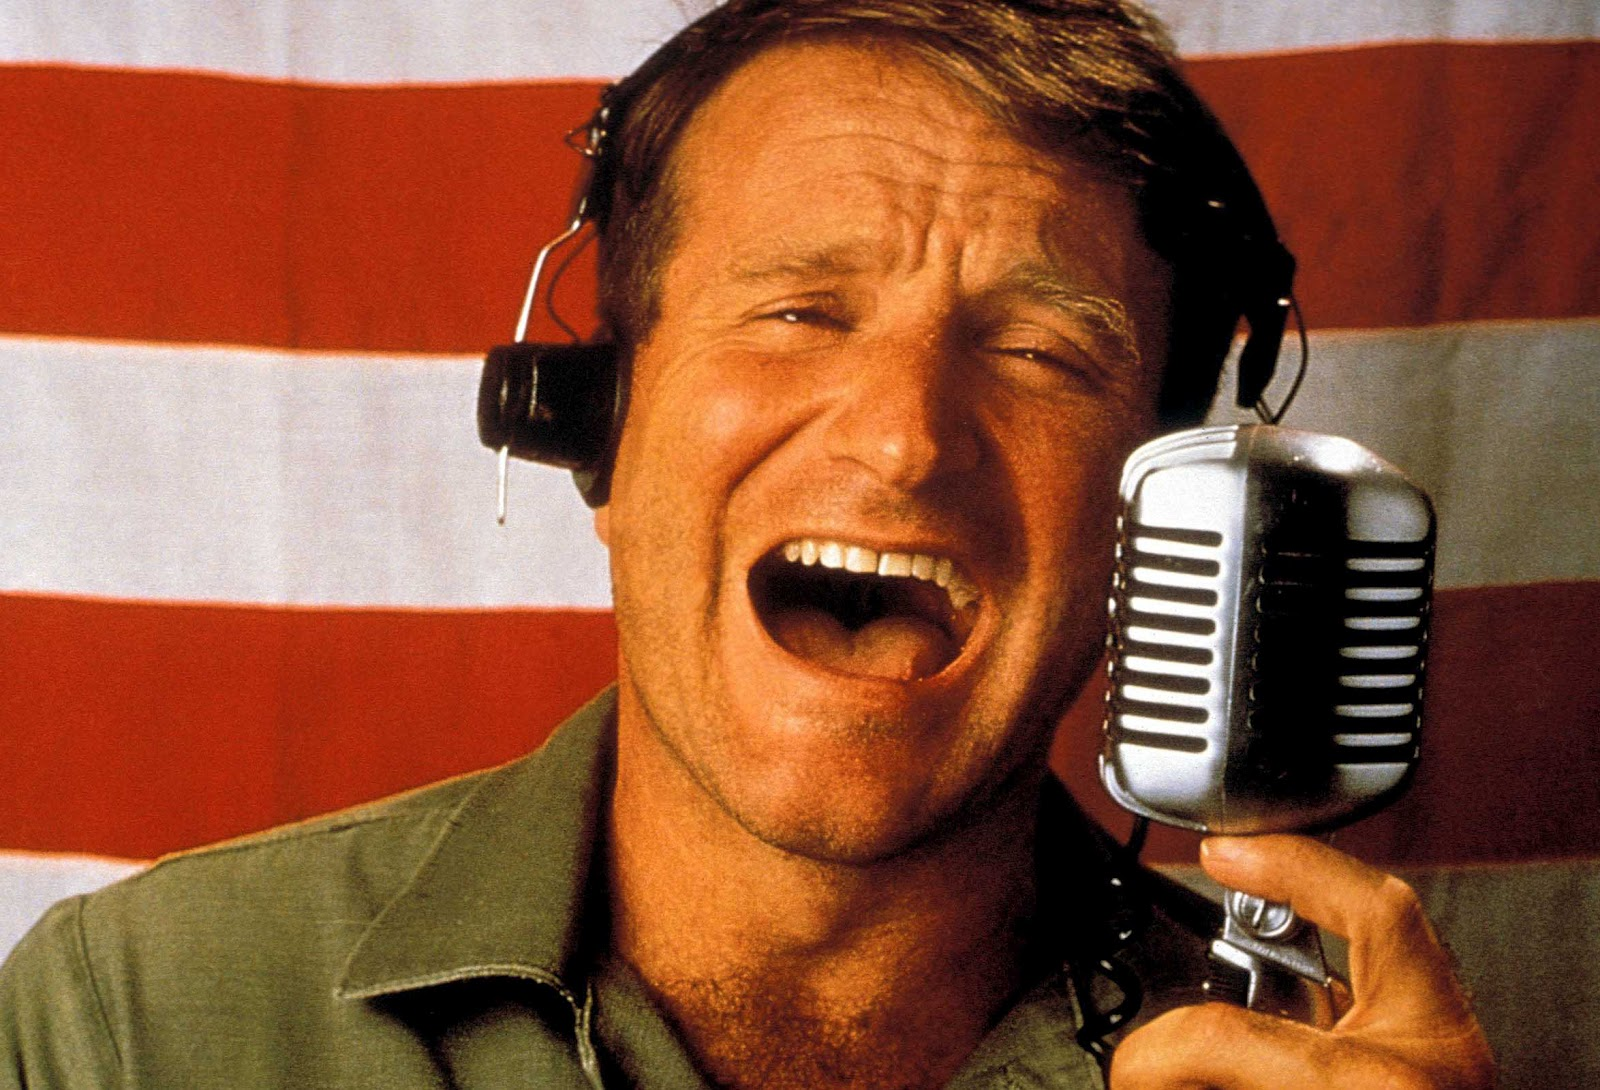 http://3.bp.blogspot.com/-ytSvAOyP5ic/T_mx7gUT-bI/AAAAAAAAA78/PrV4hWy0_gQ/s1600/Good-Morning-Vietnam-robin-williams-25340599-2348-1599.jpg